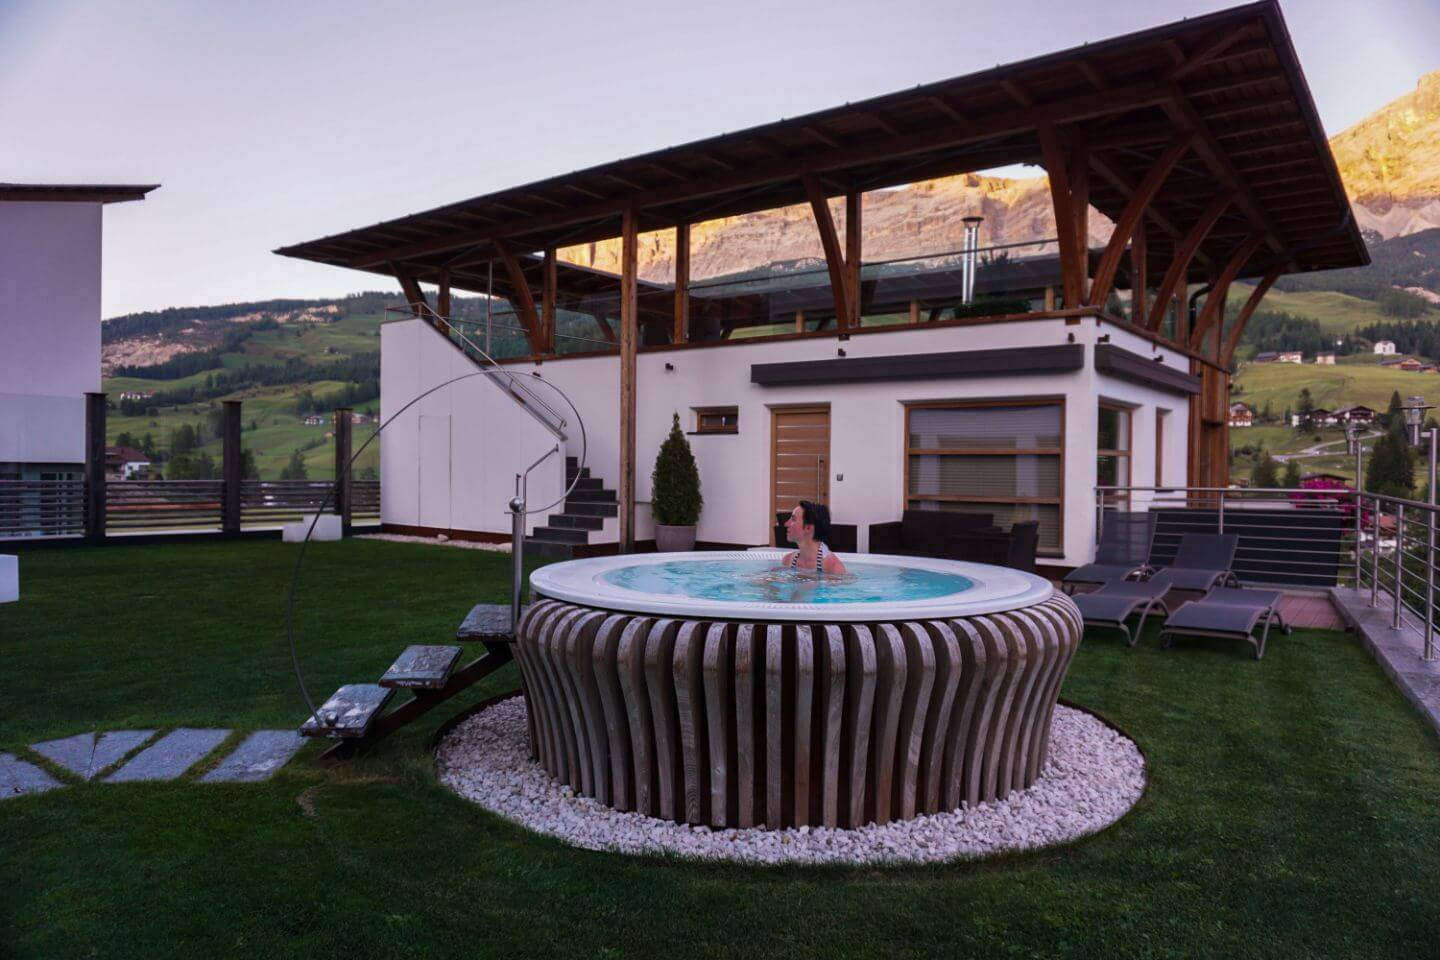 Where to stay in Alta Badia - Hotel Ciasa Soleil in La Villa - Dolomites